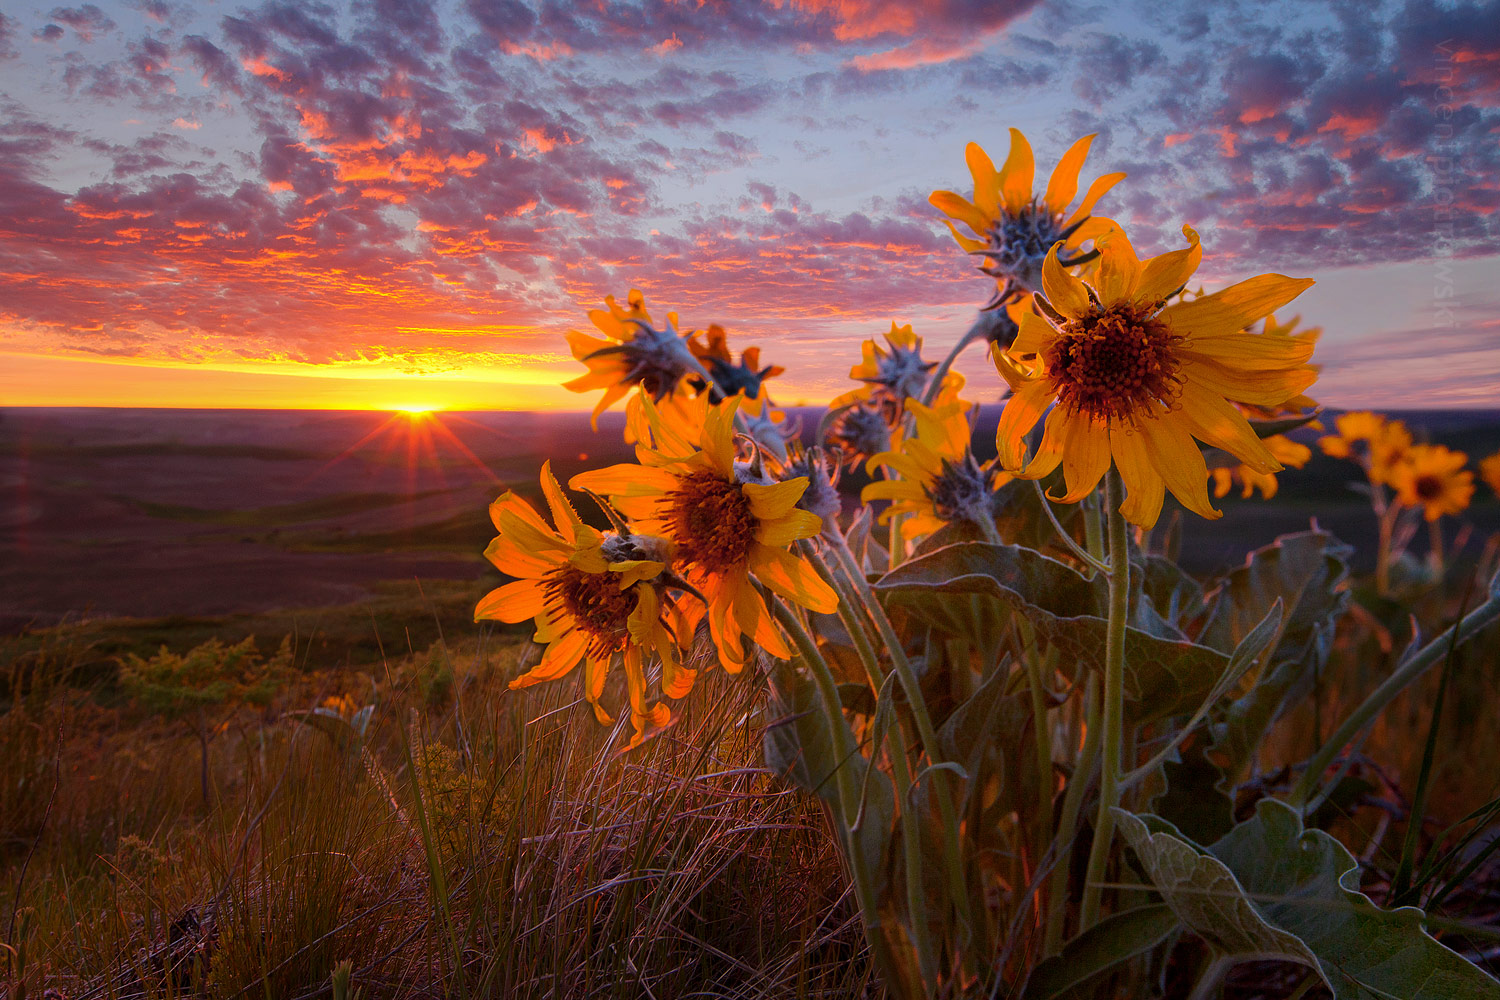 A picture of some wild flowers (Balsamroot) shot off the side of Steptoe Butte in the Palouse area of Washington during an epic sunset